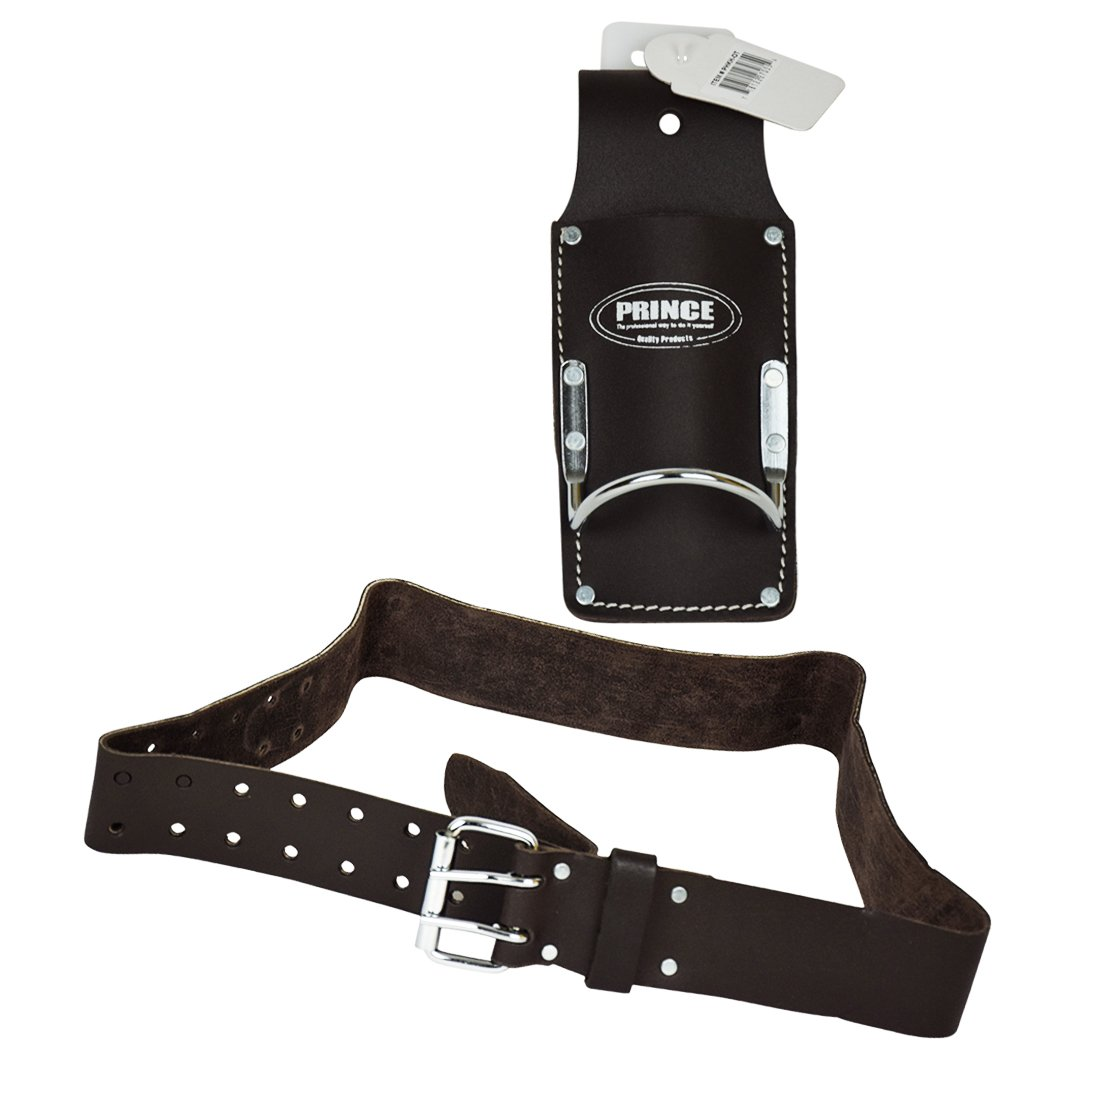 Prince Bundle Oil Tan Leather Heavy Duty Hammer Hanger and Utility Knife Holder with Oil Tanned Leather Belt Combo